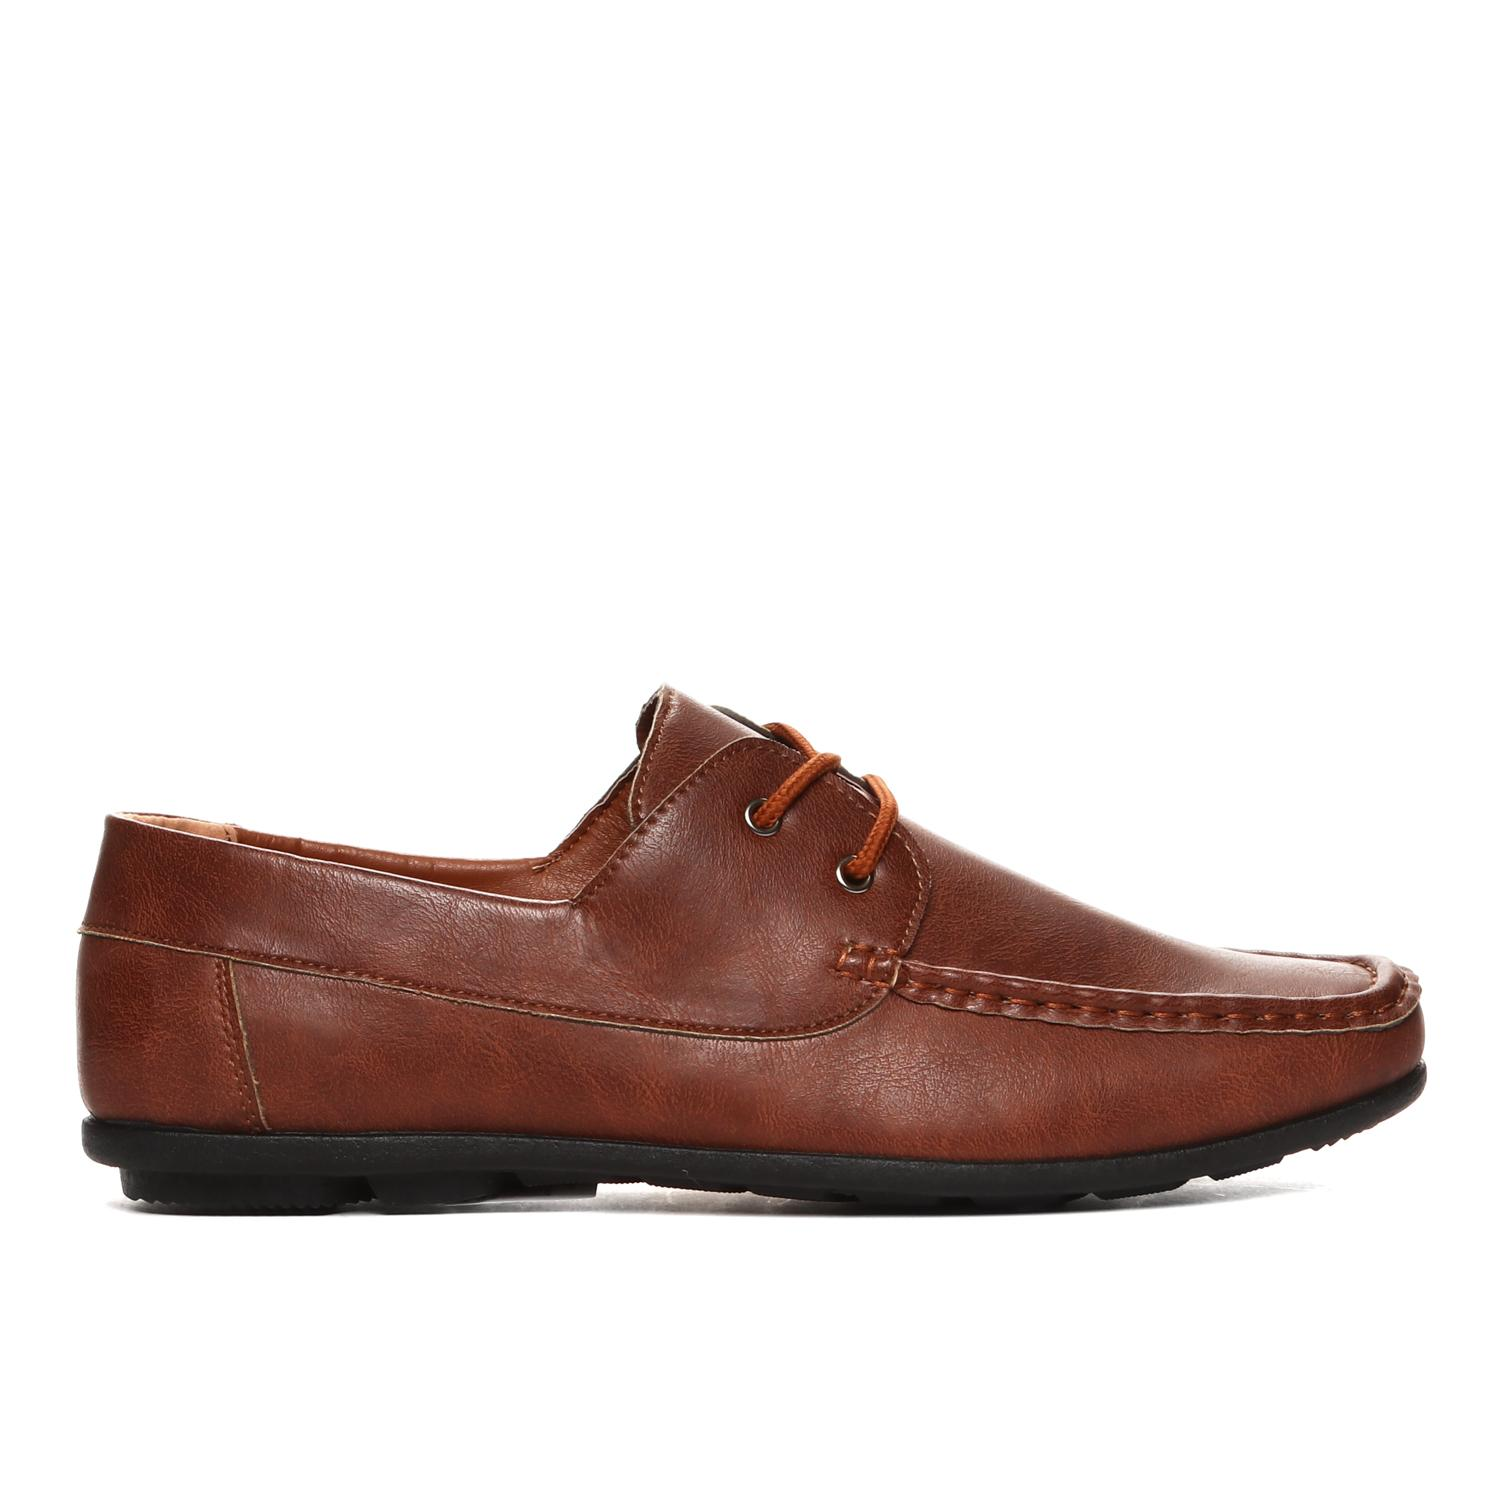 6b3f581bf06 Milanos Philippines: Milanos price list - Formal Shoes, Slippers ...